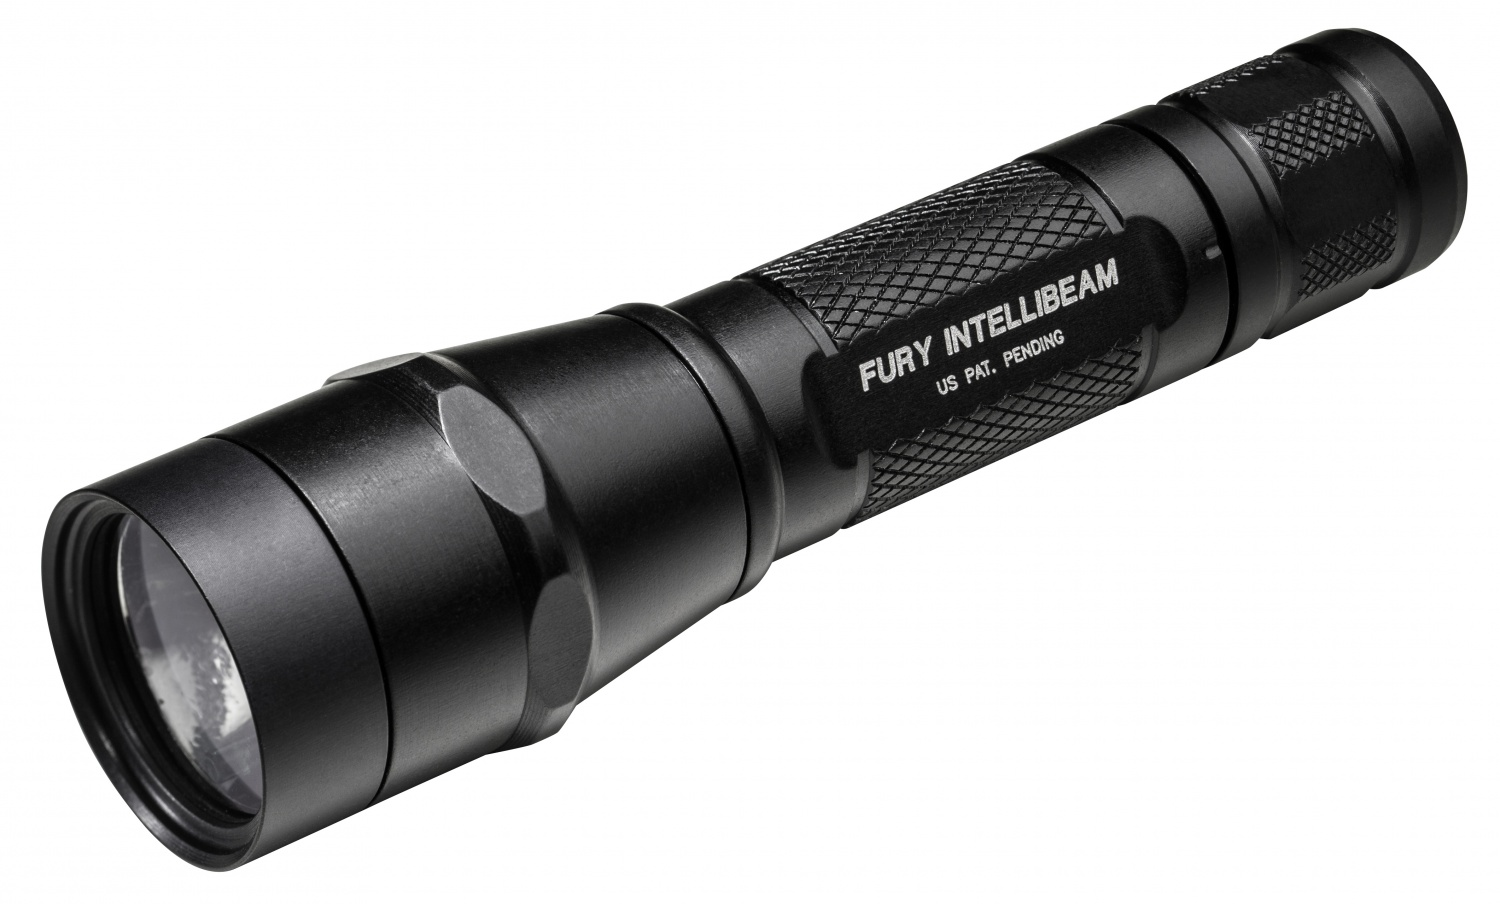 Ambient Light Sensor >> SureFire Unveils Auto-Adjusting Flashlight: The New Fury with IntelliBeam Technology -The ...